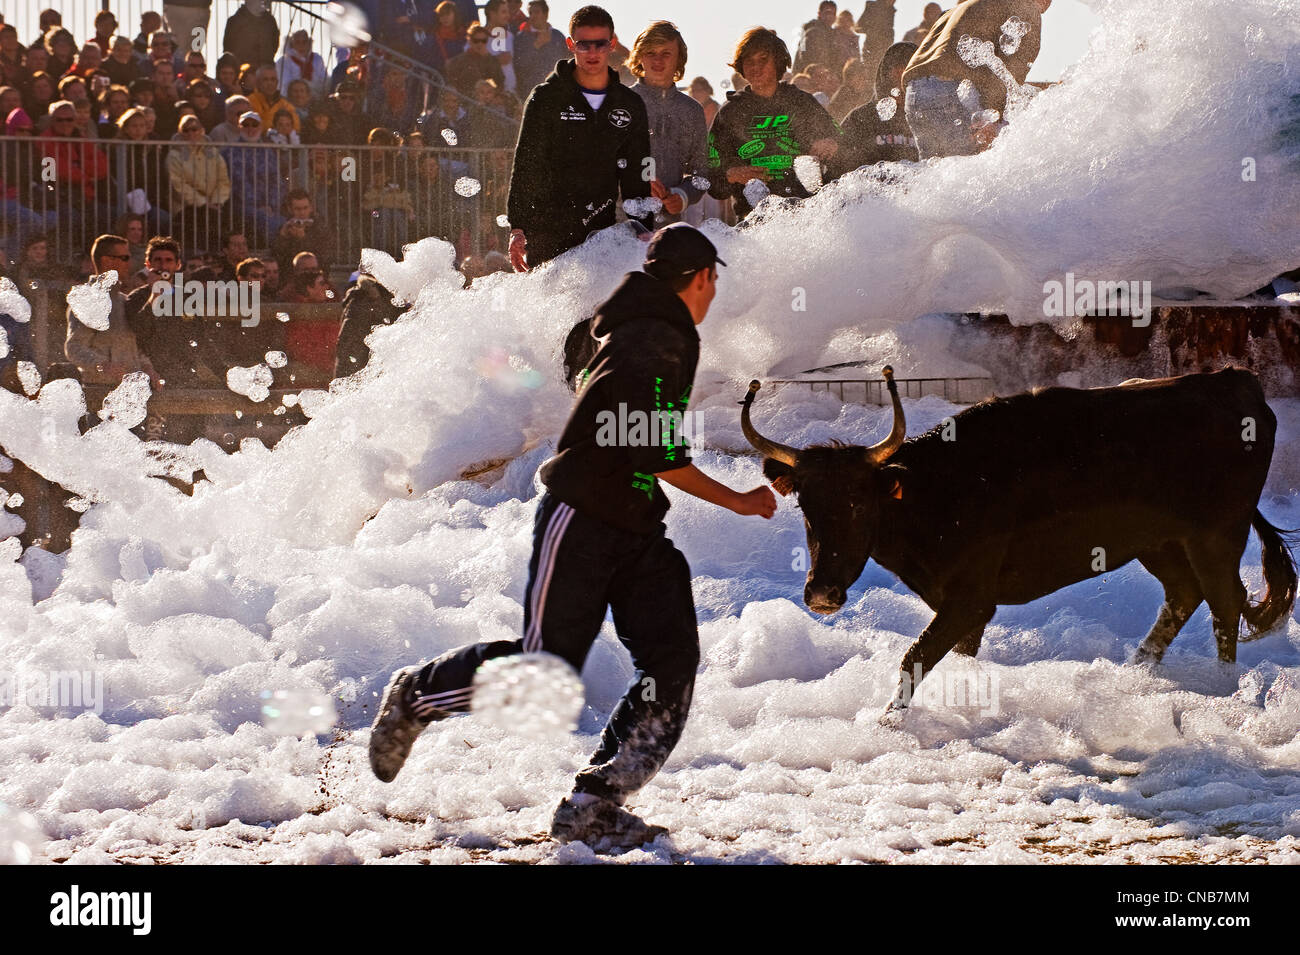 France, Gard, Aigues Mortes, Bull foam game at the foot of the medieval city where the youth exercise in practicing - Stock Image